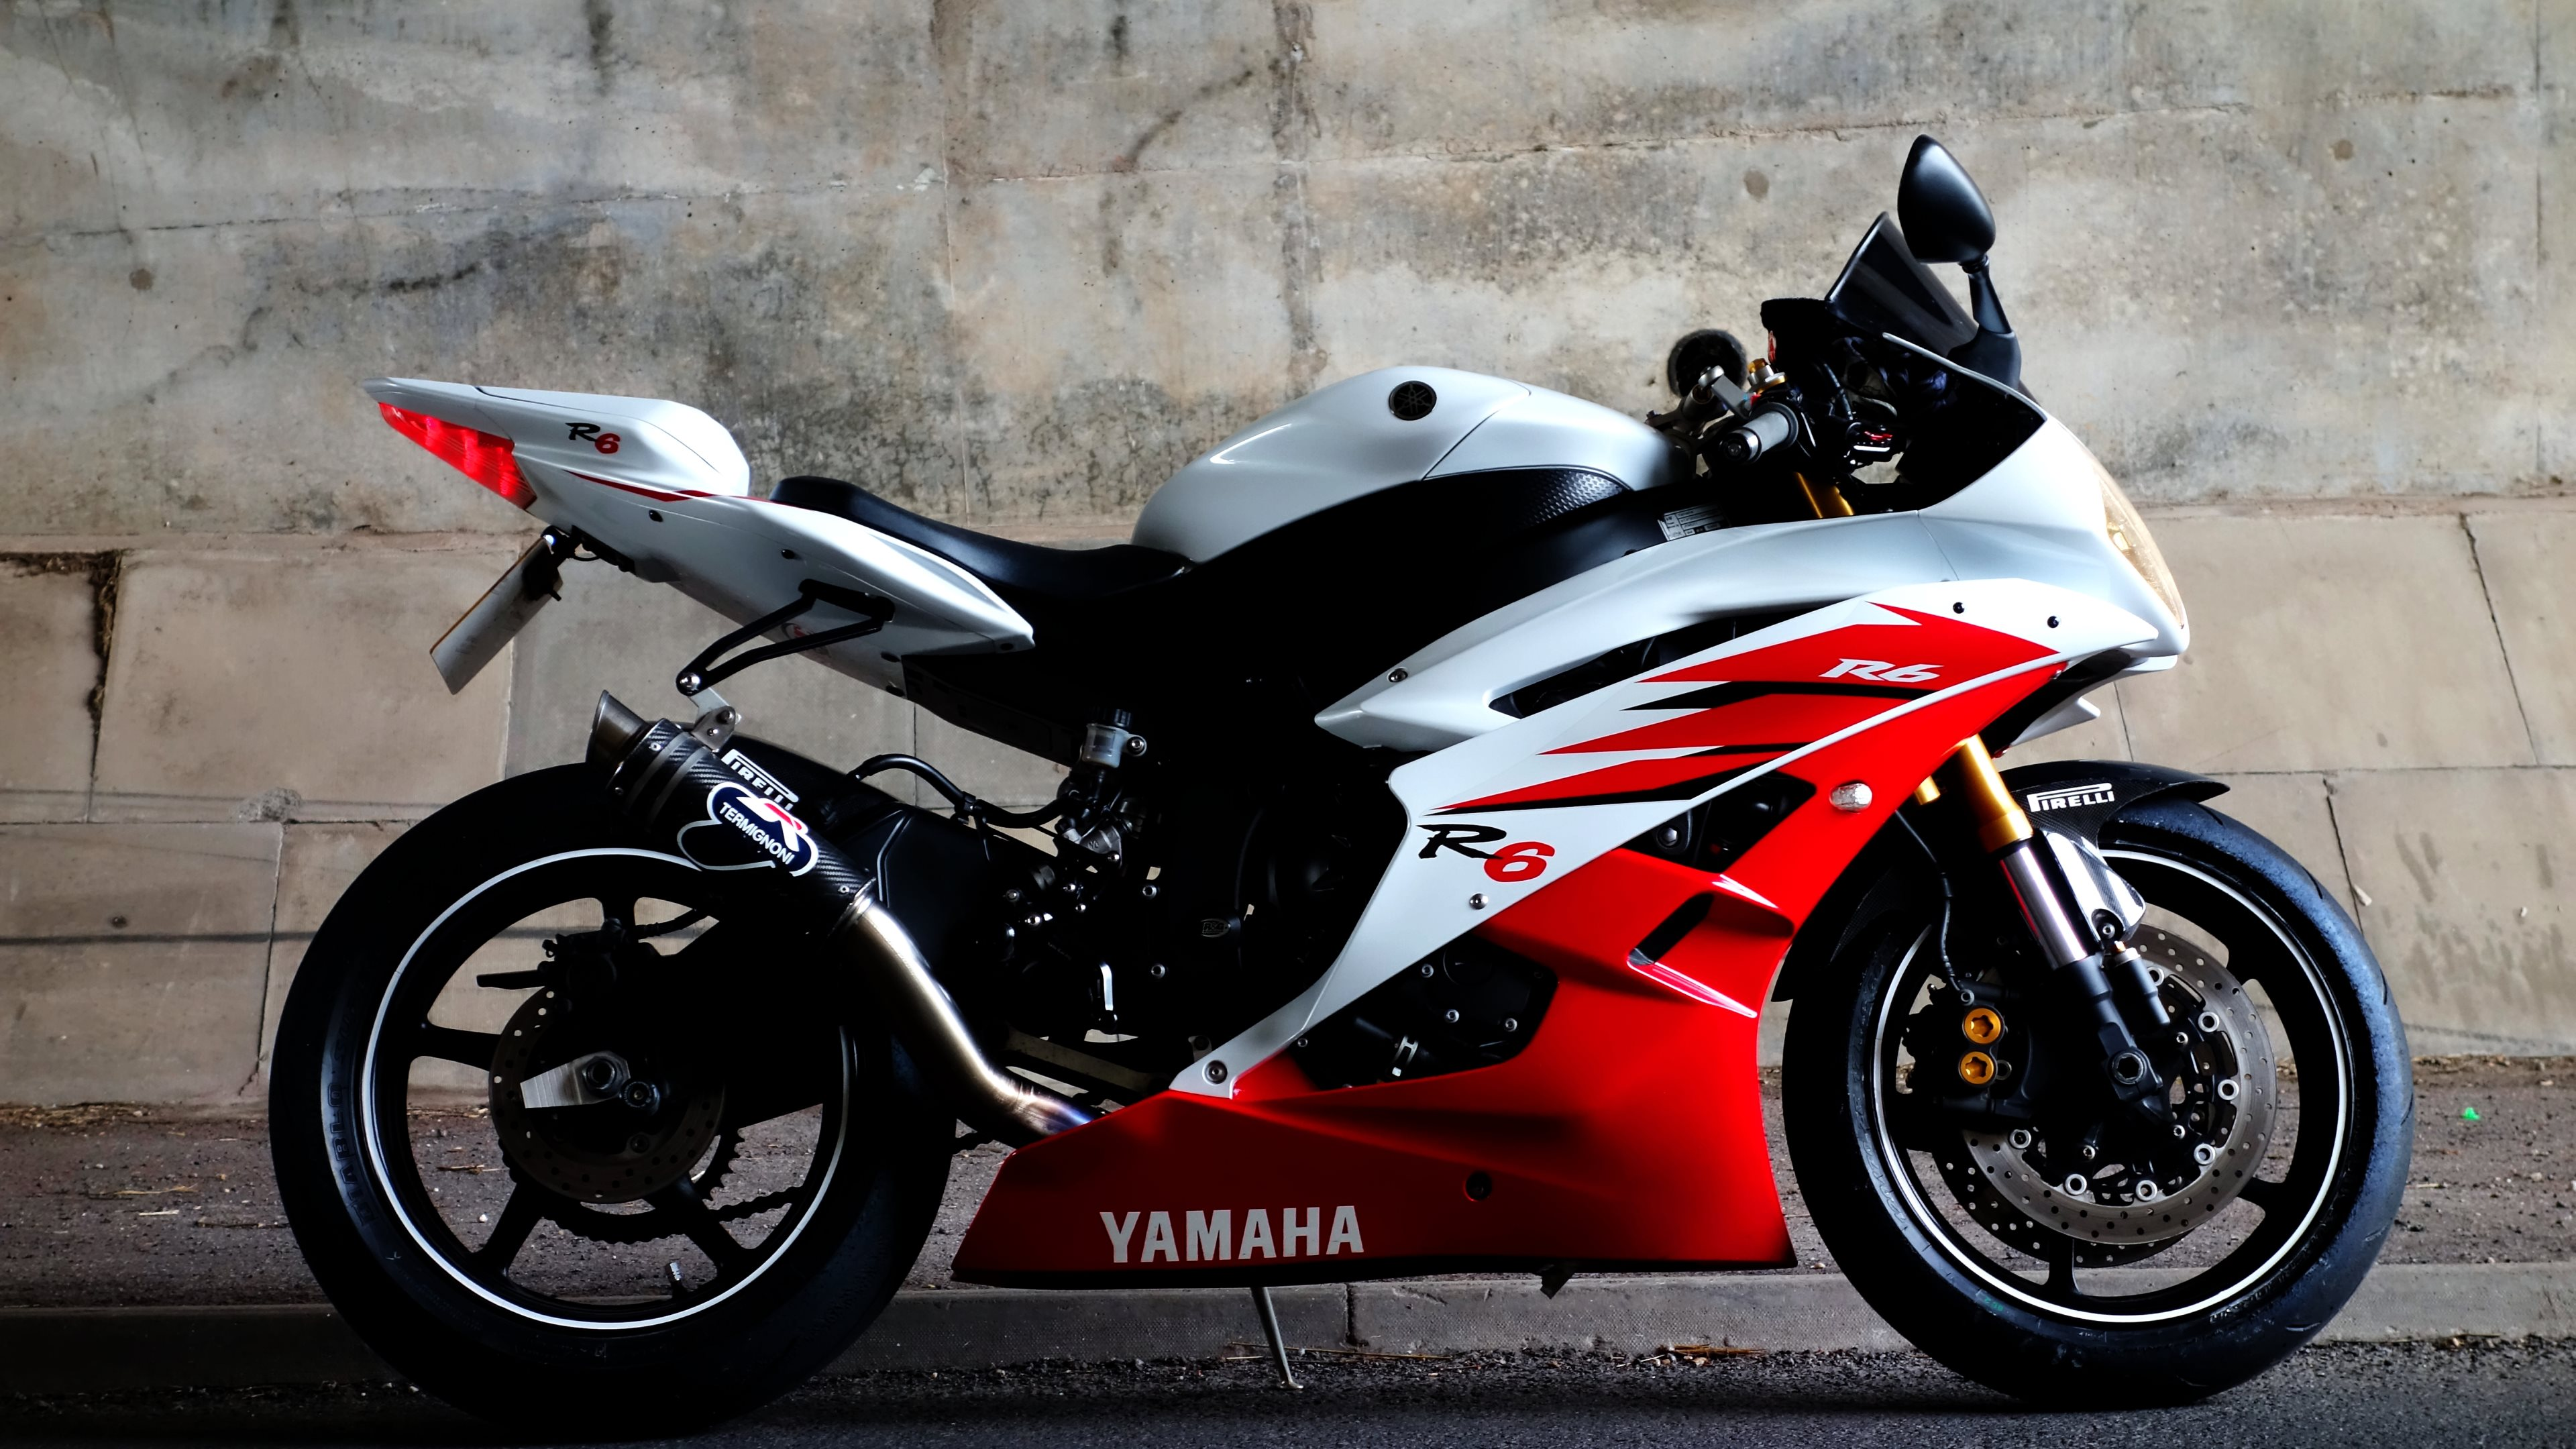 Yamaha r6 motorcycle hd collection 13 wallpapers yamaha r6 bike 4231466 1920x1080 all for desktop altavistaventures Gallery